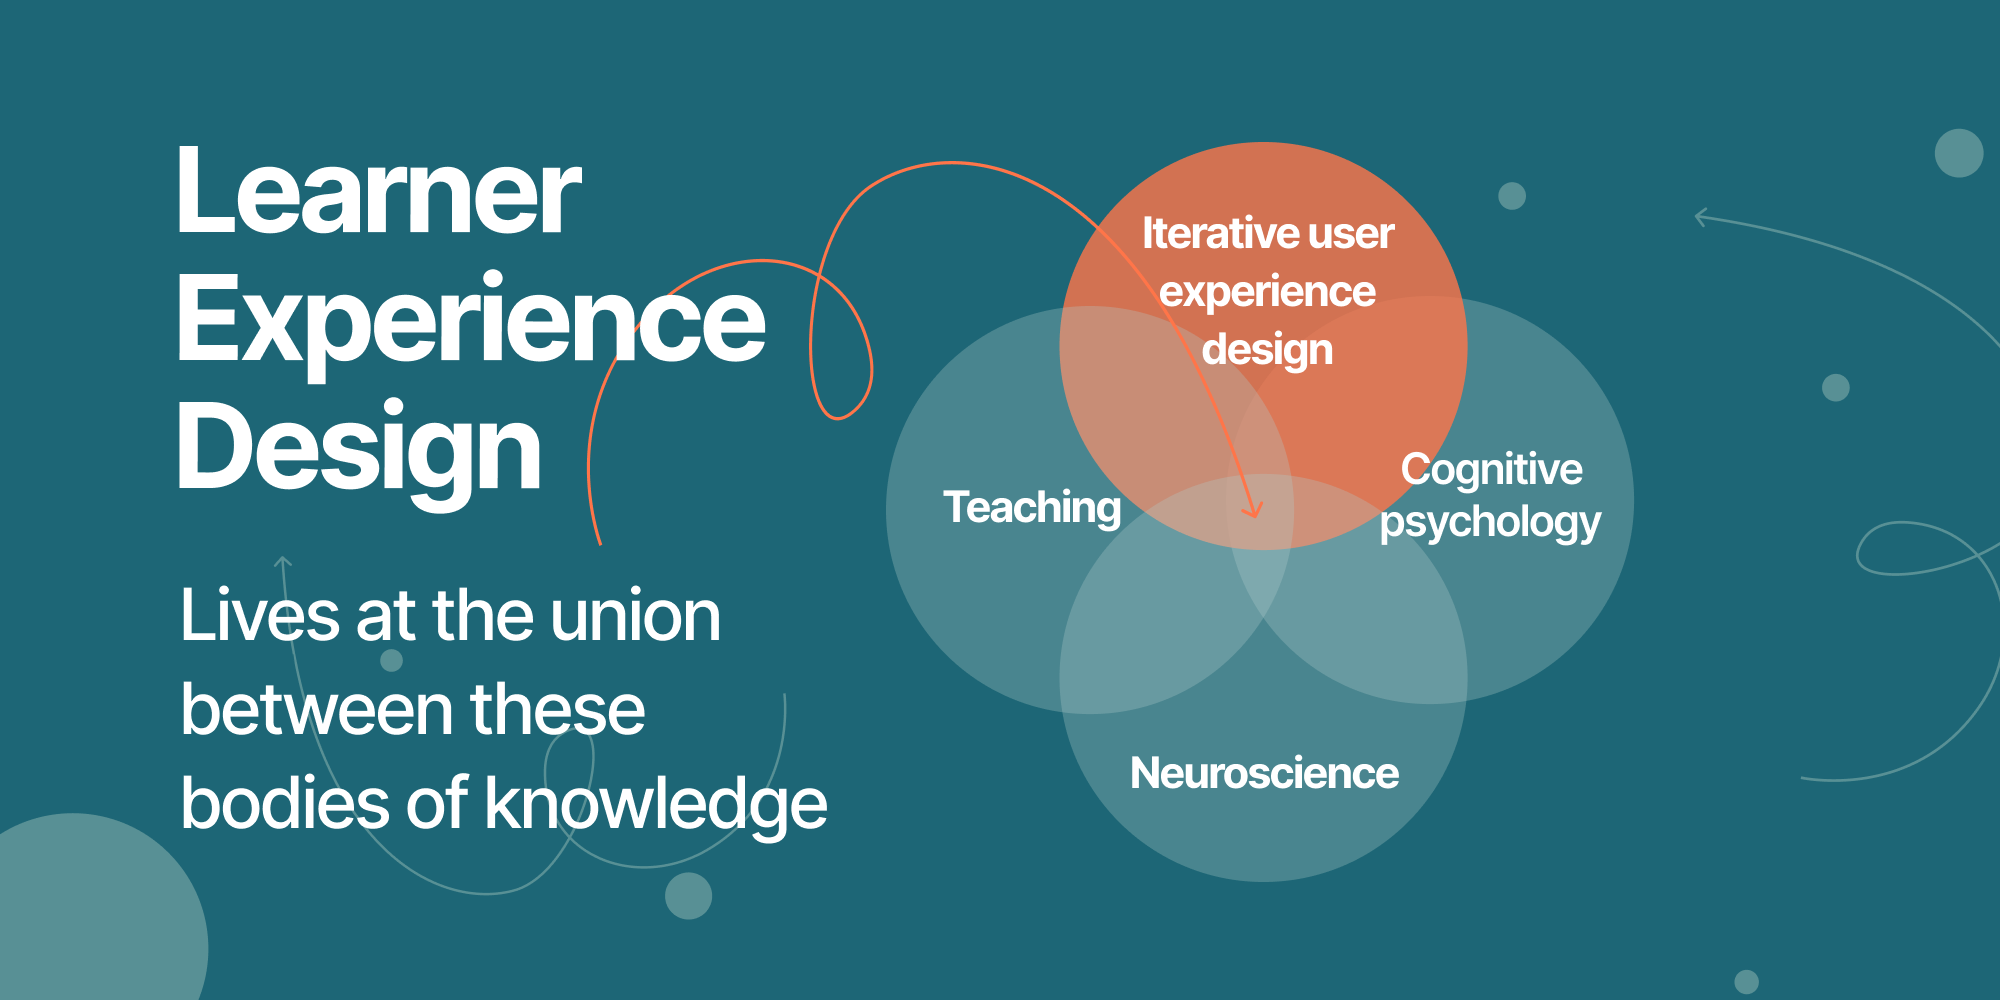 Learner experience design lives at the union of these 4 bodies of knowledge   Profi L&D platform